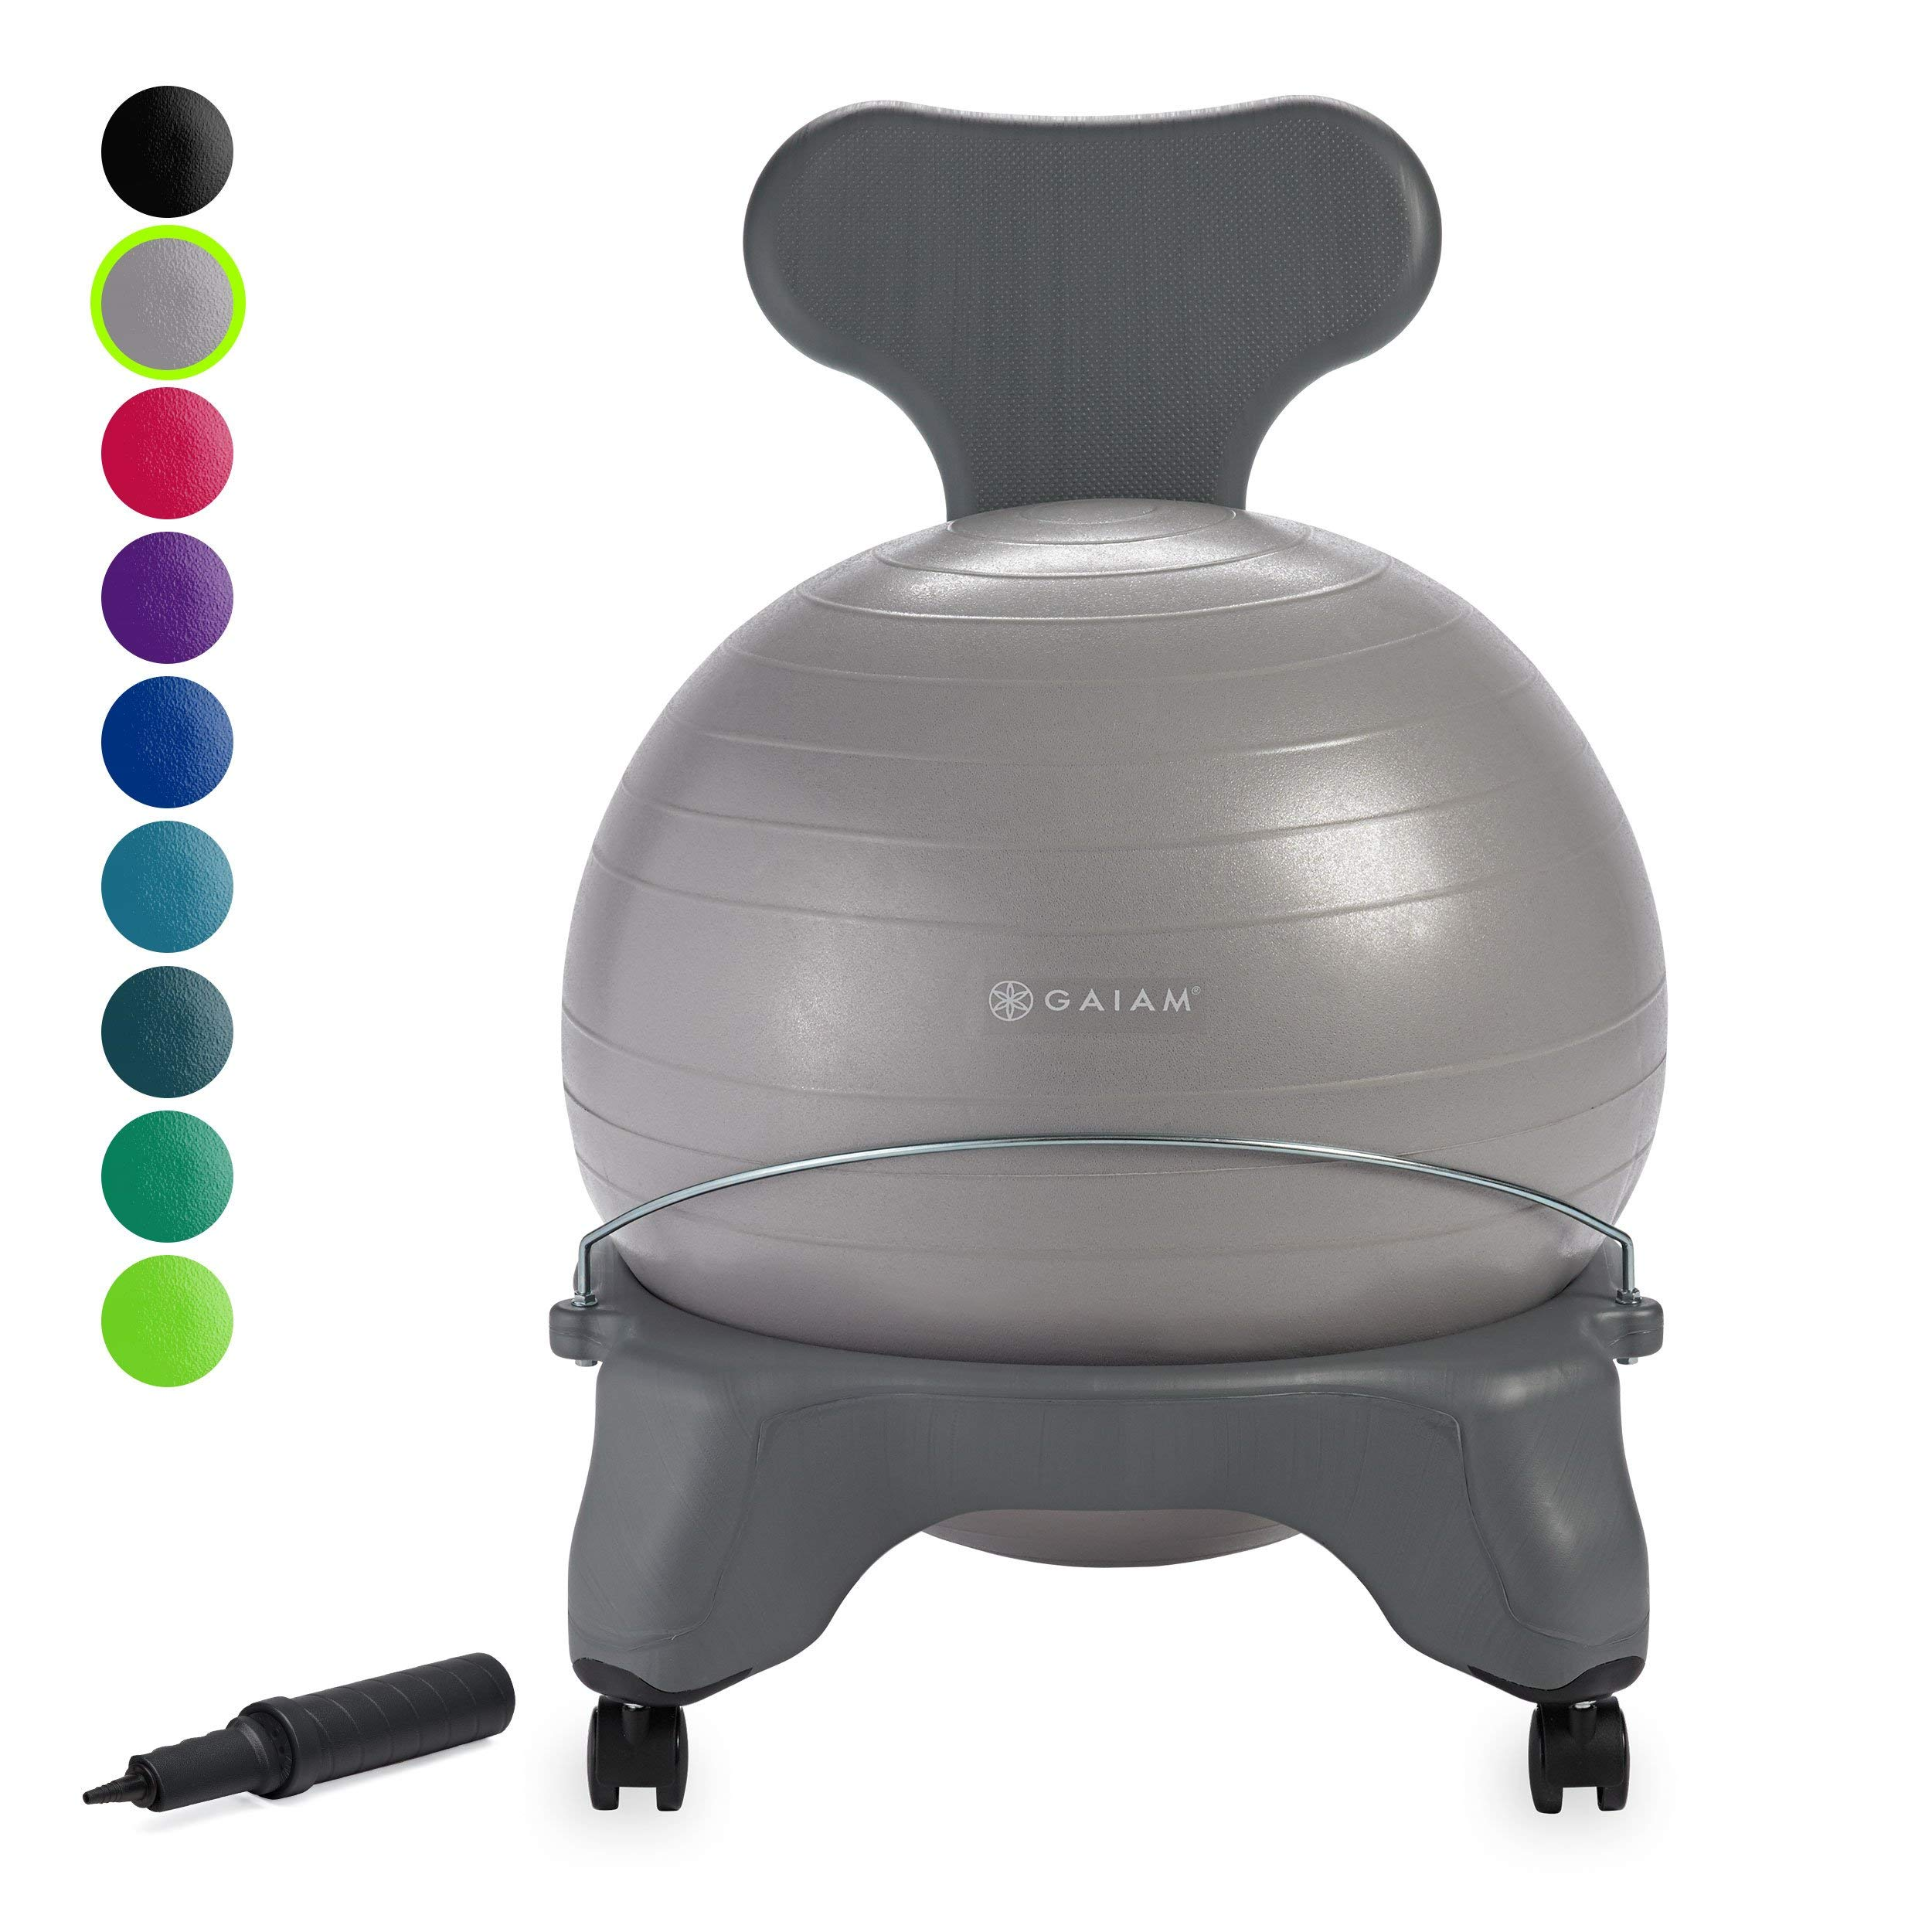 Gaiam Classic Balance Ball Chair - Exercise Stability Yoga Ball Premium Ergonomic Chair for Home, Office Desk w/Air Pump, Exercise Guide and Satisfaction Guarantee, Cool Grey (Renewed) by Gaiam